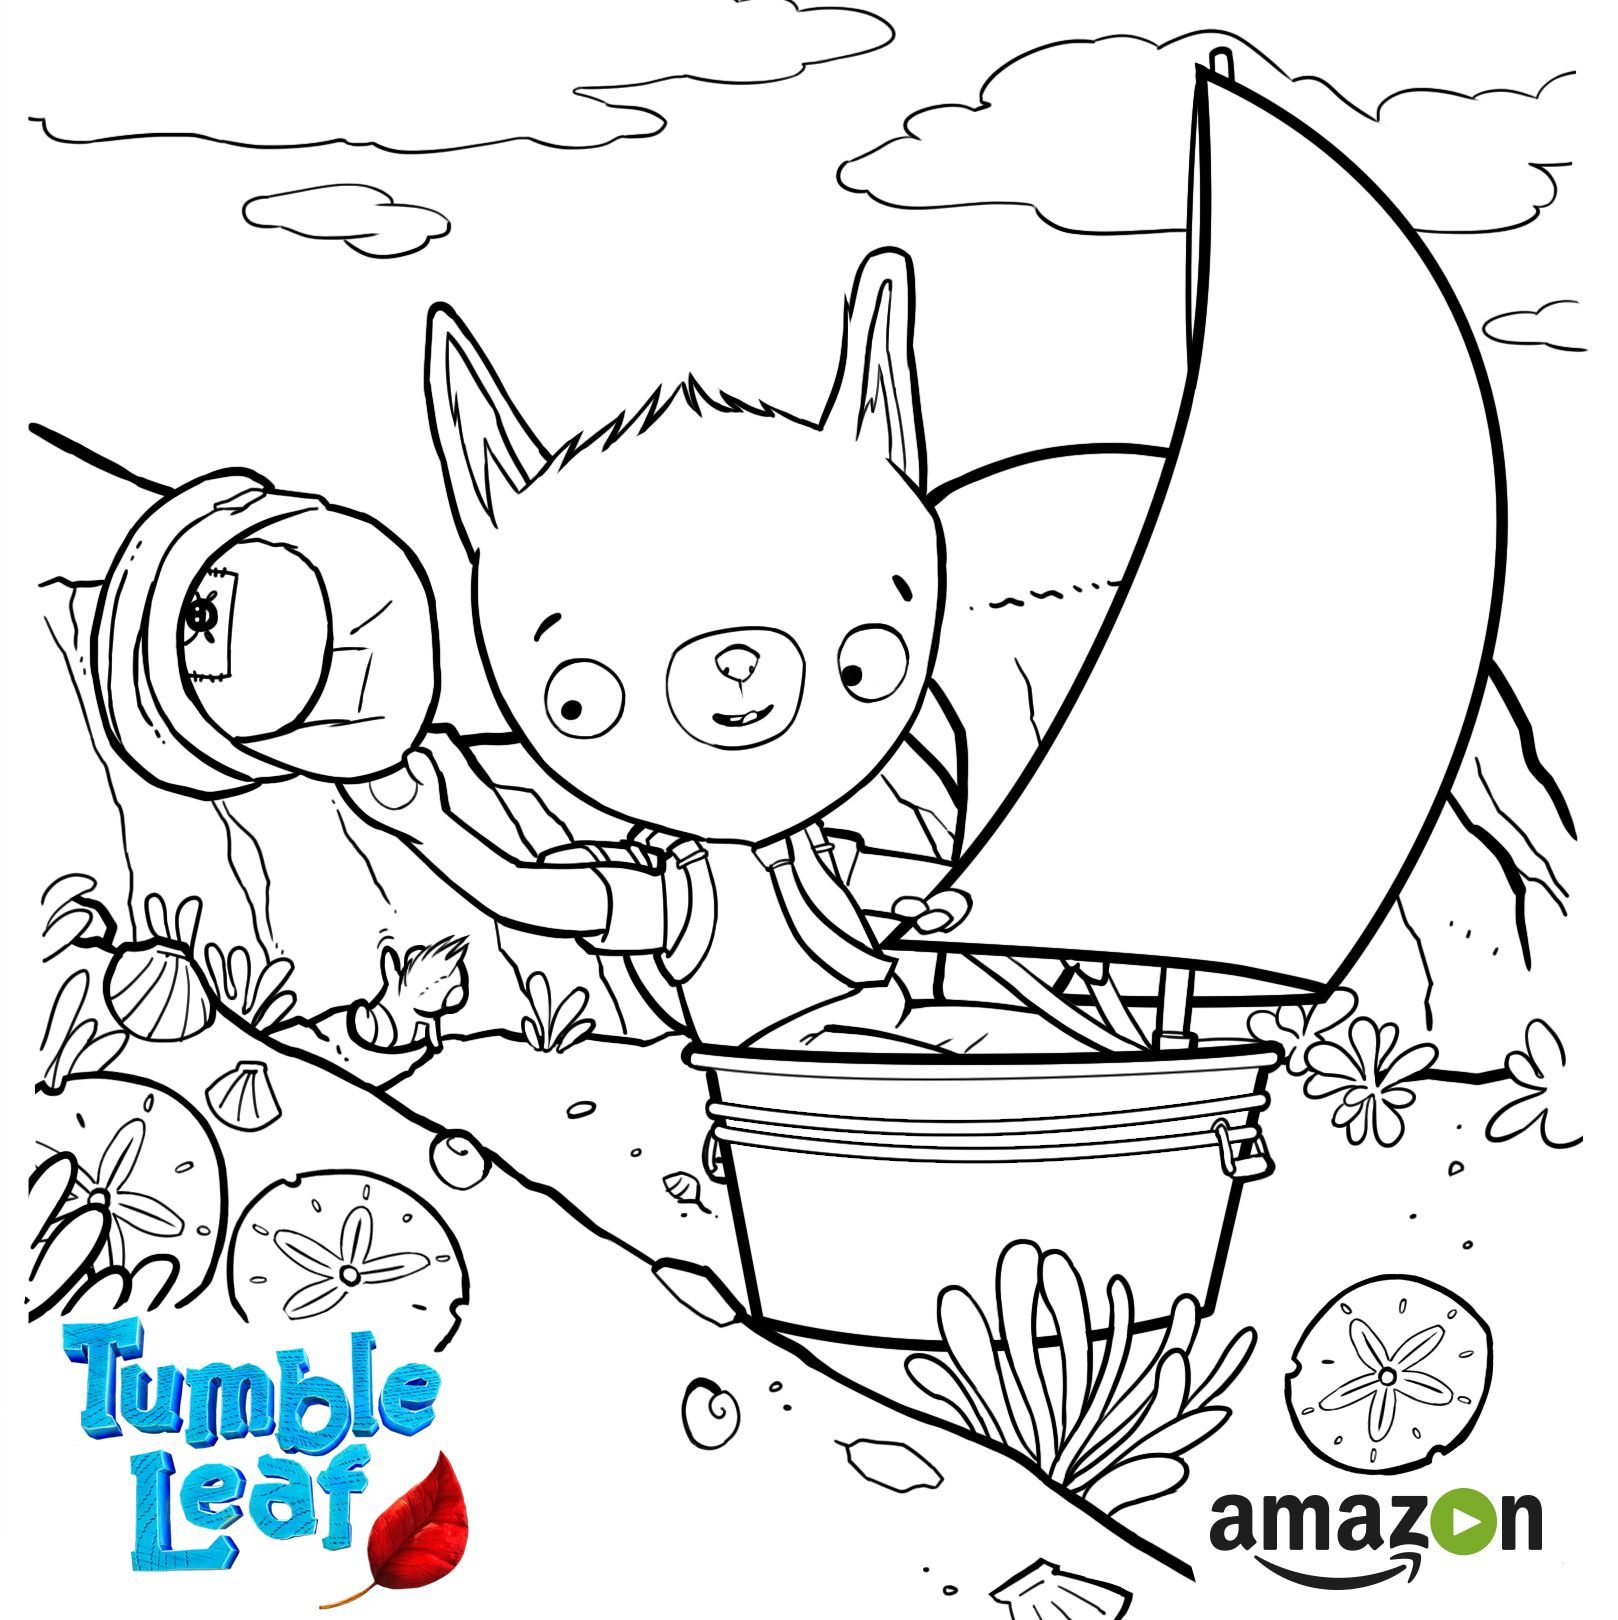 Coloring pages rainforest - New Season Of Tumble Leaf On Amazon Ad Download Coloring Page Rainforest Habitat Coloring Pages Printables